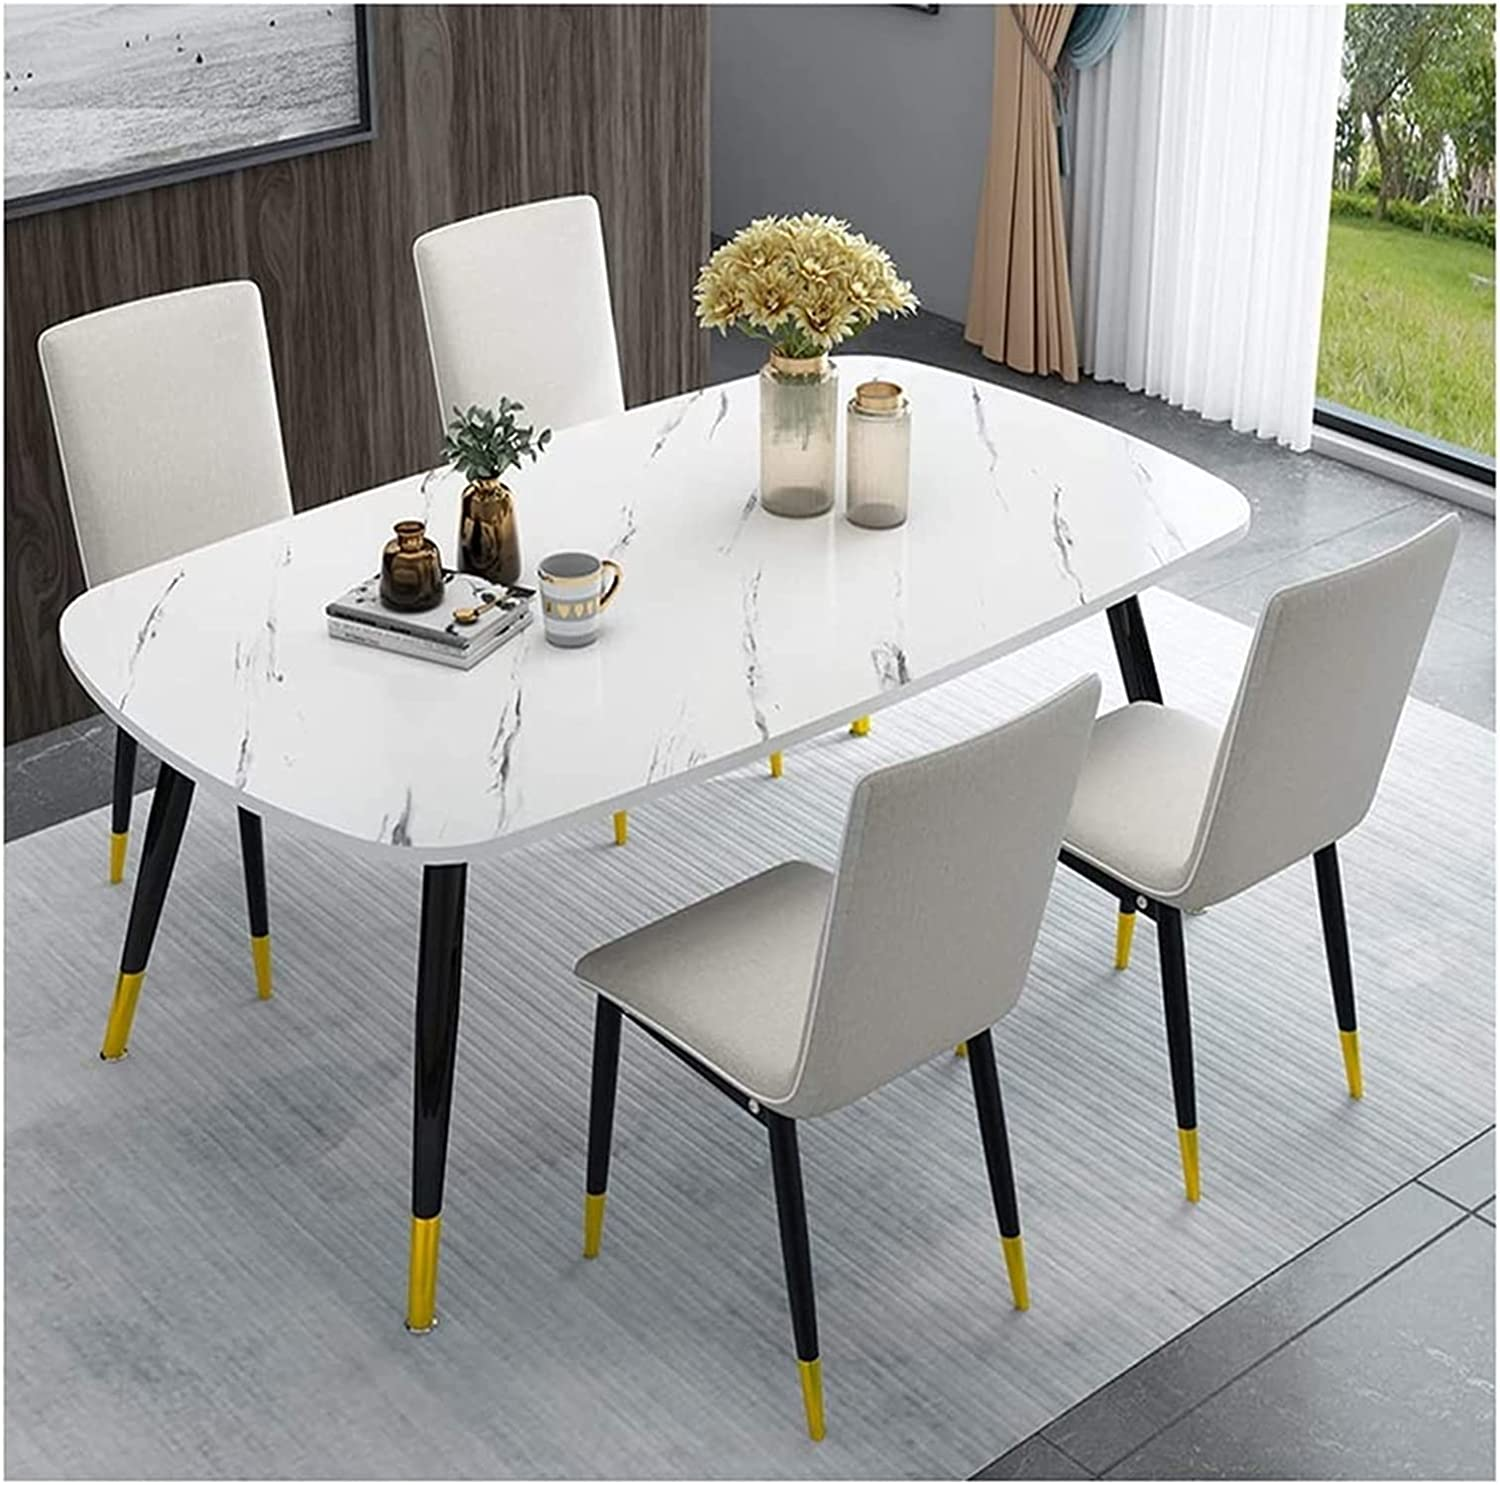 Cheap mail order specialty store ASDDD Office specialty shop Reception Table Chair Tables Chairs and Set Bedroom